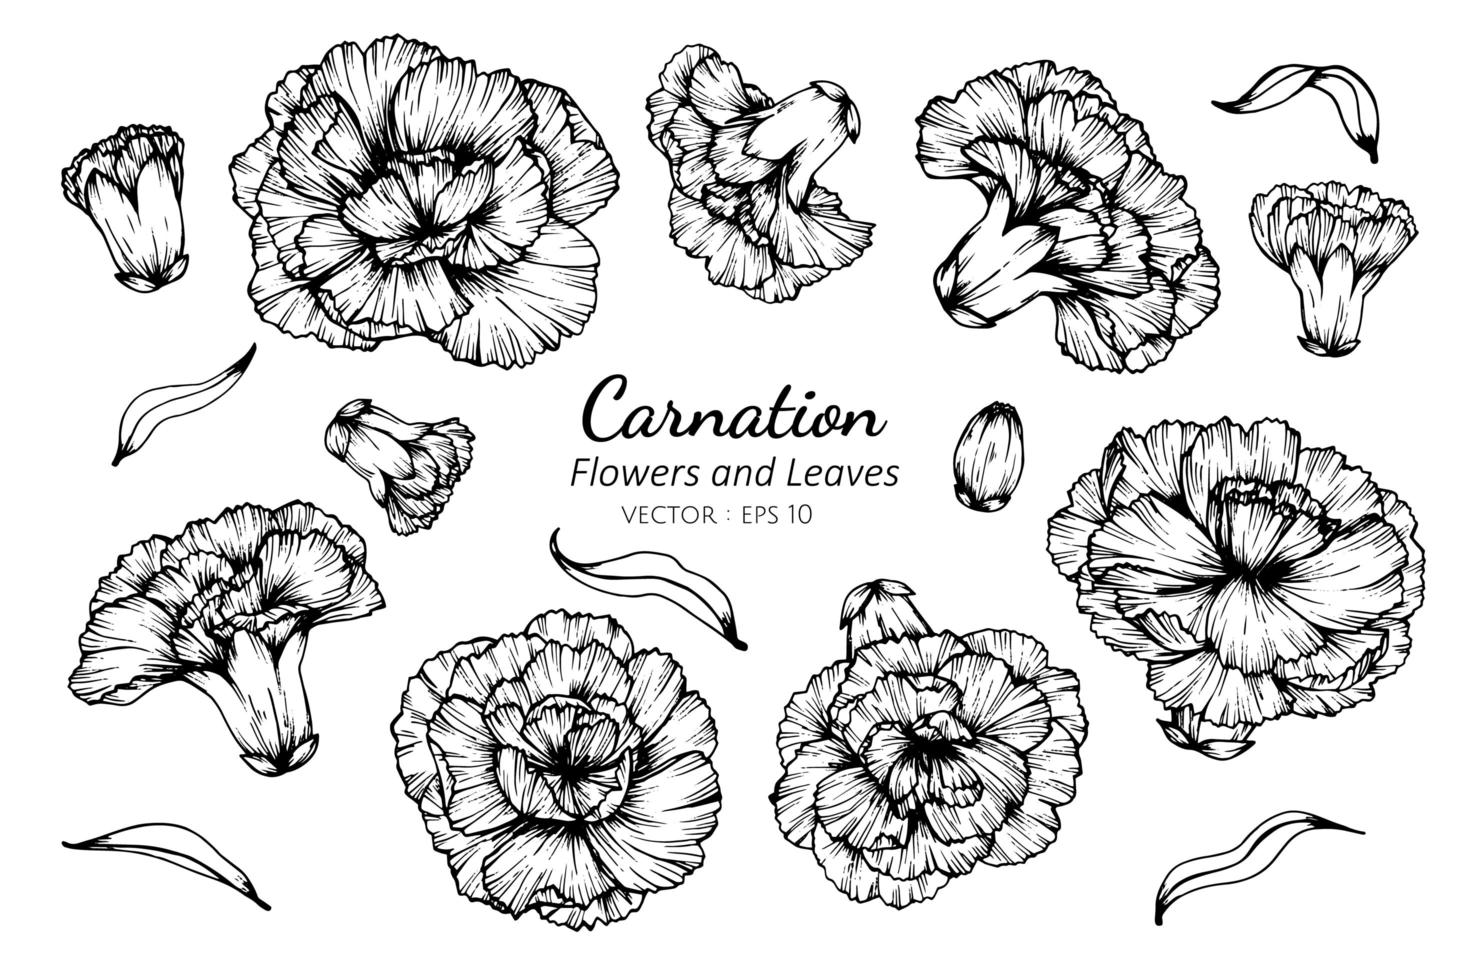 Collection of Carnation Flowers and Leaves  vector